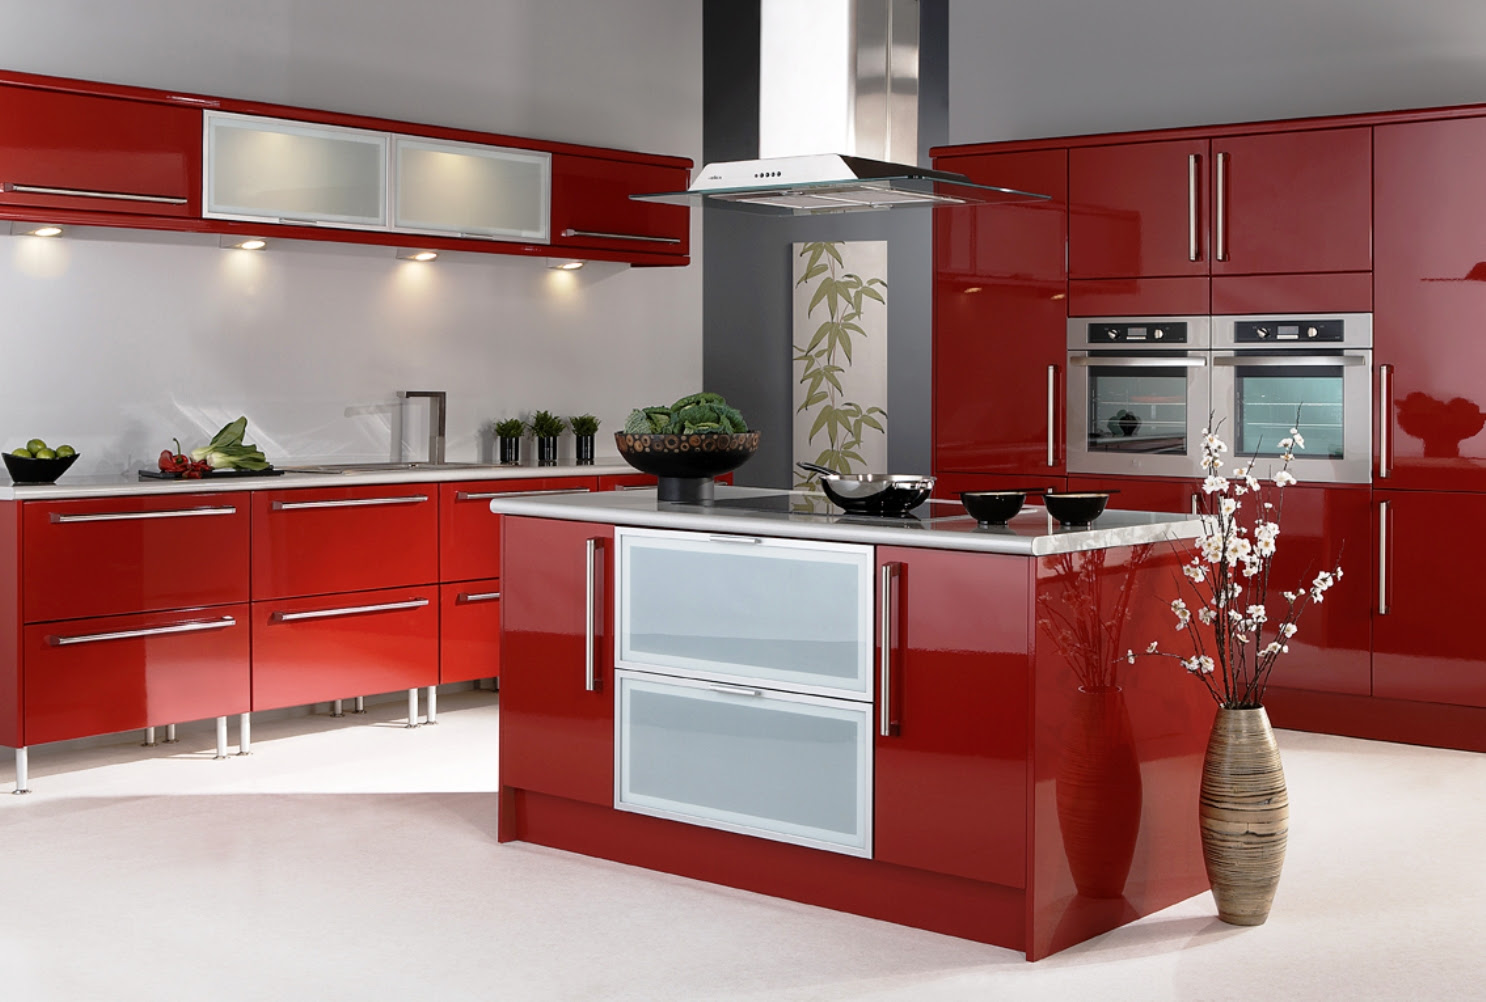 Top 18 Colorful Kitchens You Surely Want for Your Home